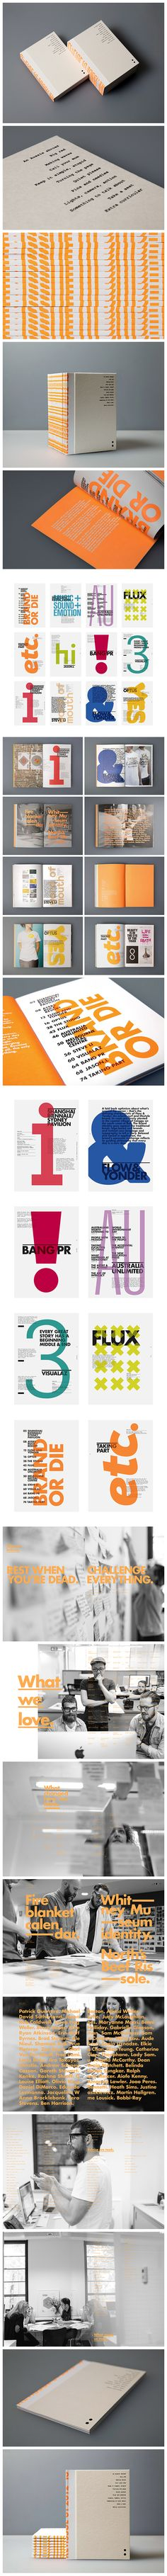 Re Issue 01: The RE issue 01 is an overview of some of the great brands we've been fortunate enough to work with in 2012-13.  https://www.behance.net/gallery/17865701/Re-ISSUE-01-2012-13